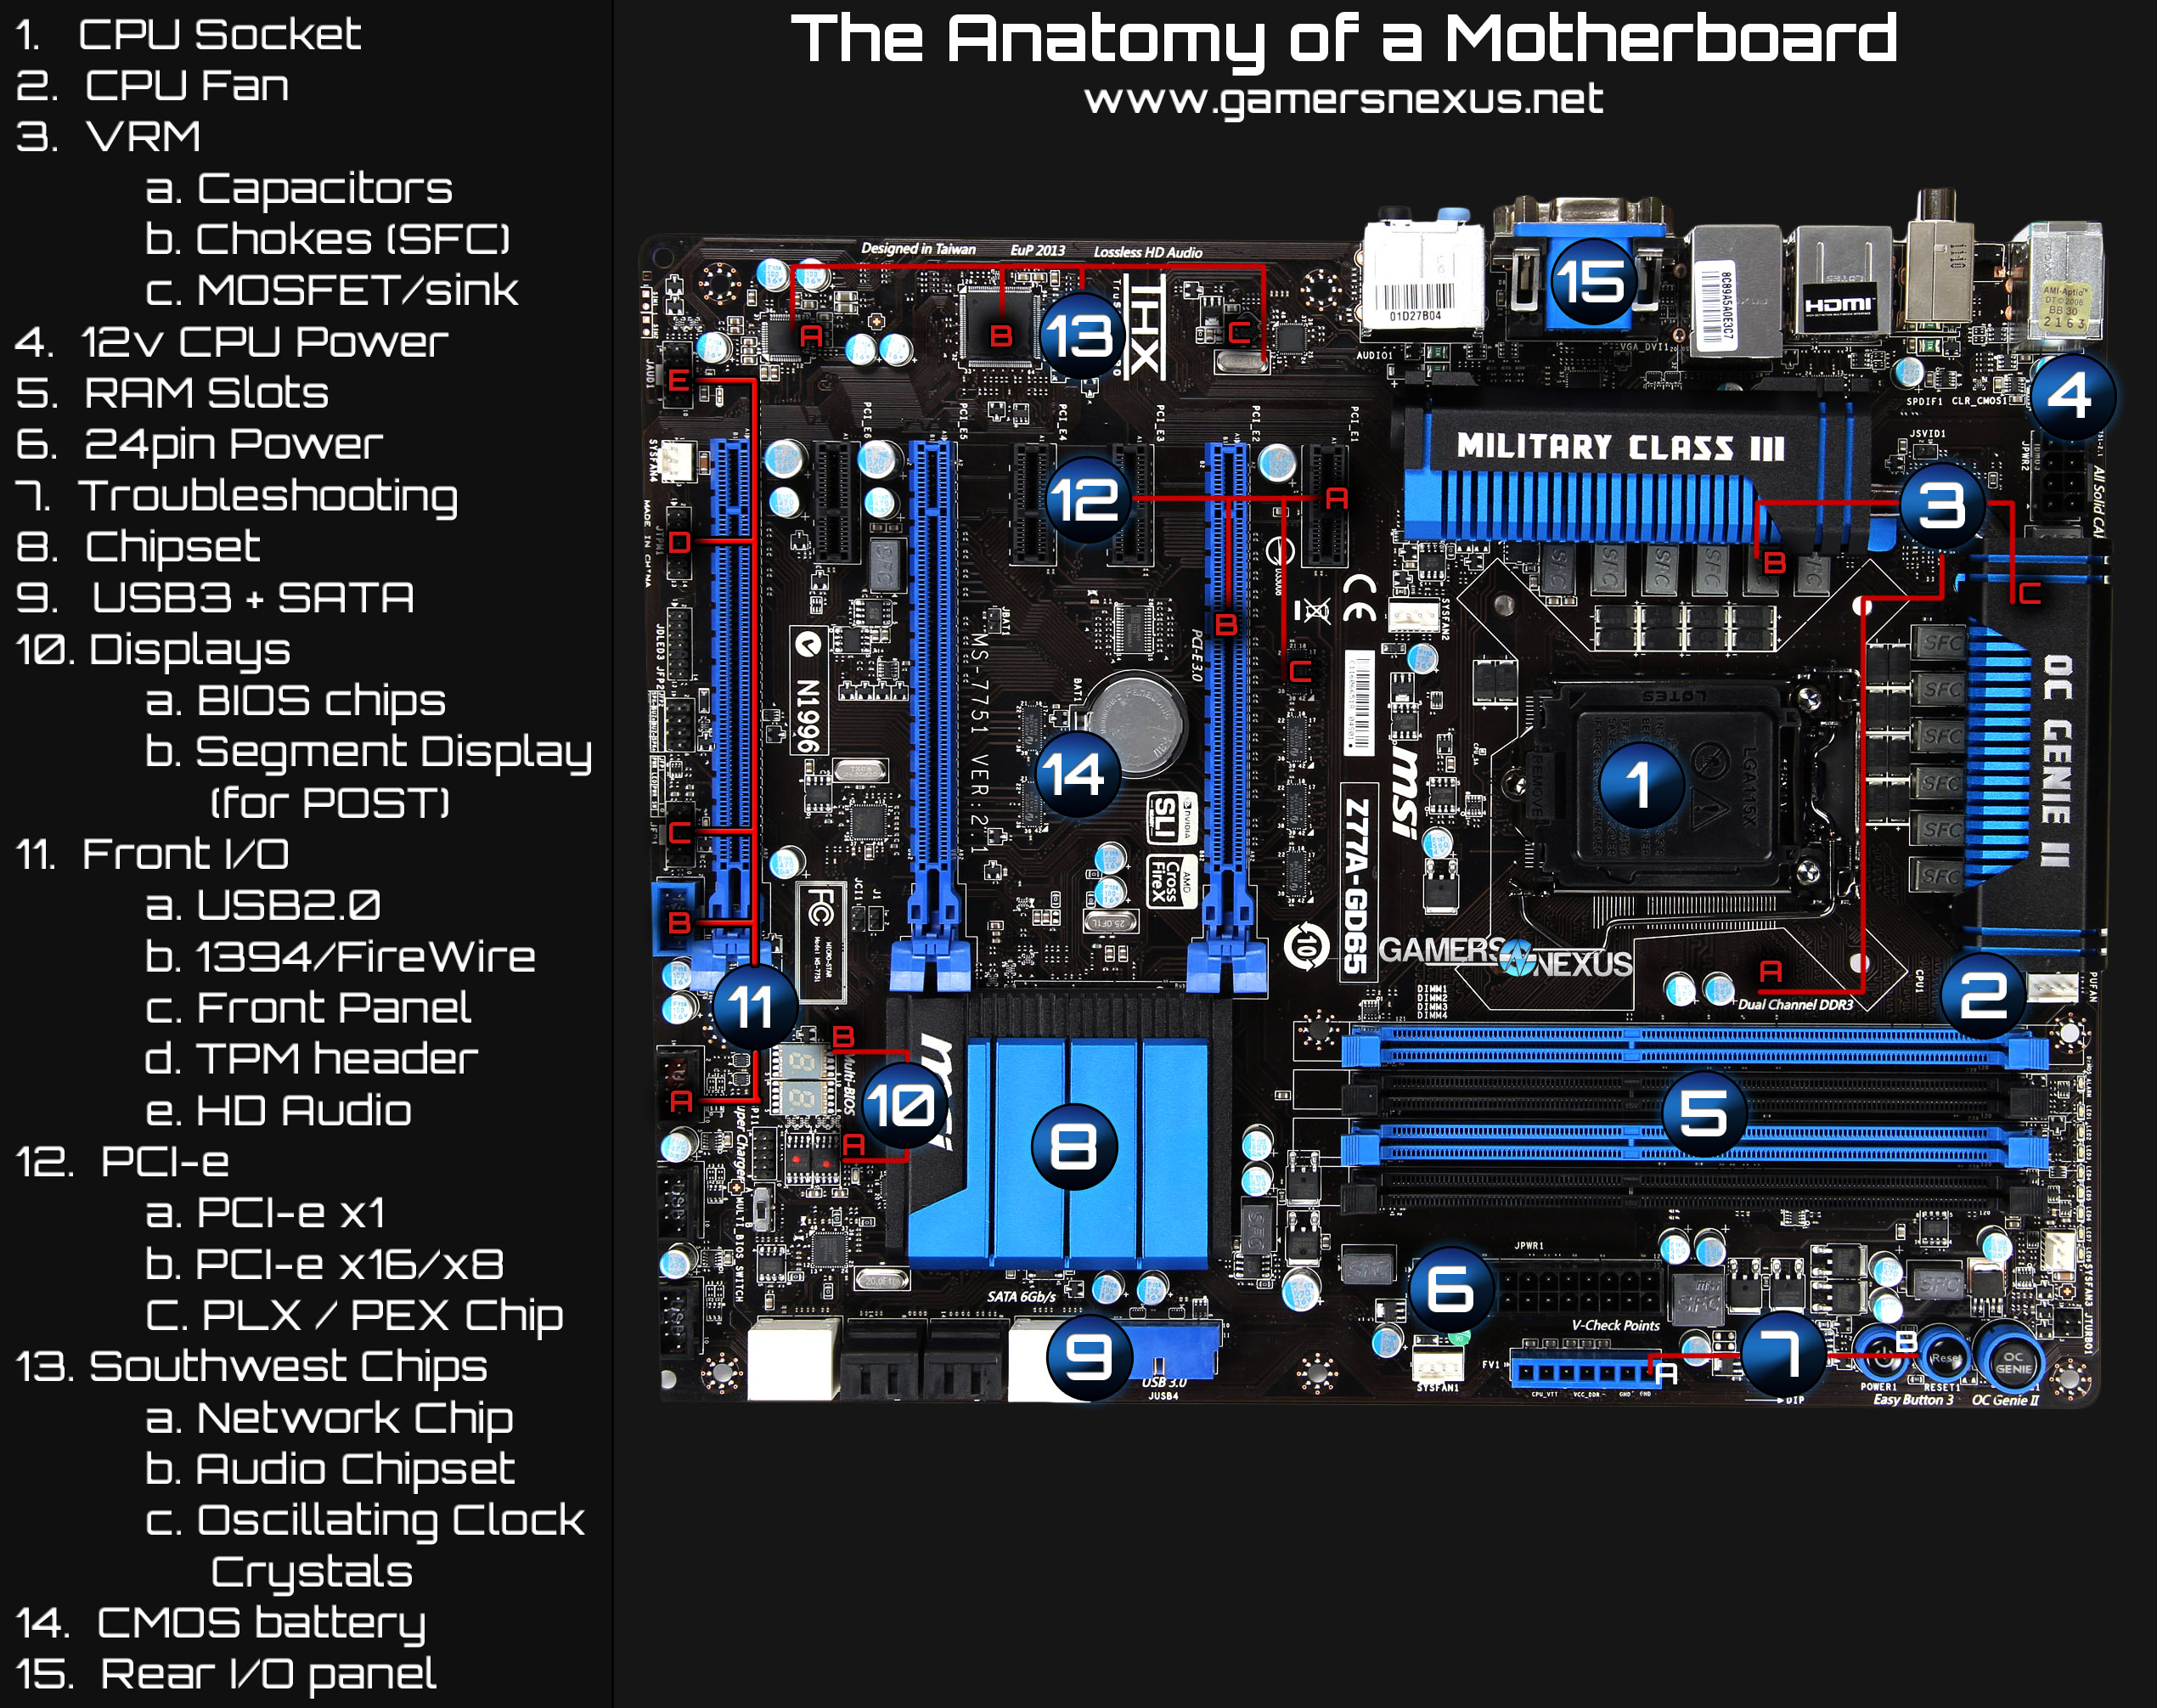 Laptop Motherboard Diagram With Labels Modern Design Of Wiring Diagrams As Well A Typical House Circuit Schematic Online Rh 15 51 Shareplm De Computer Label Basic